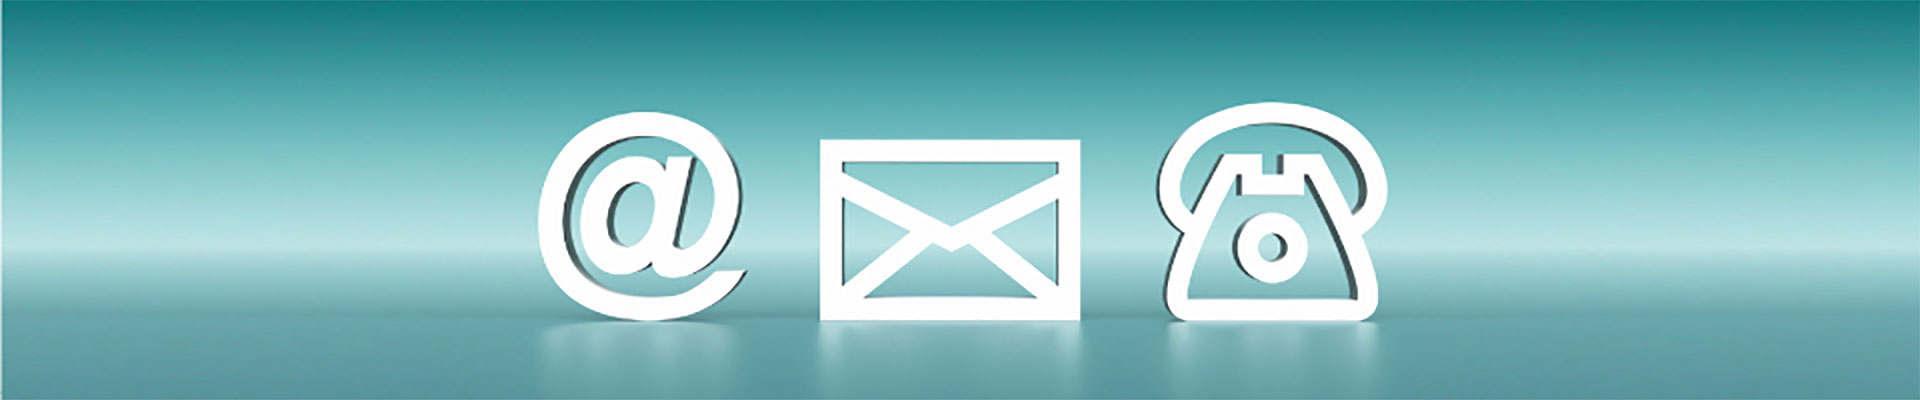 Email and Phone symbols